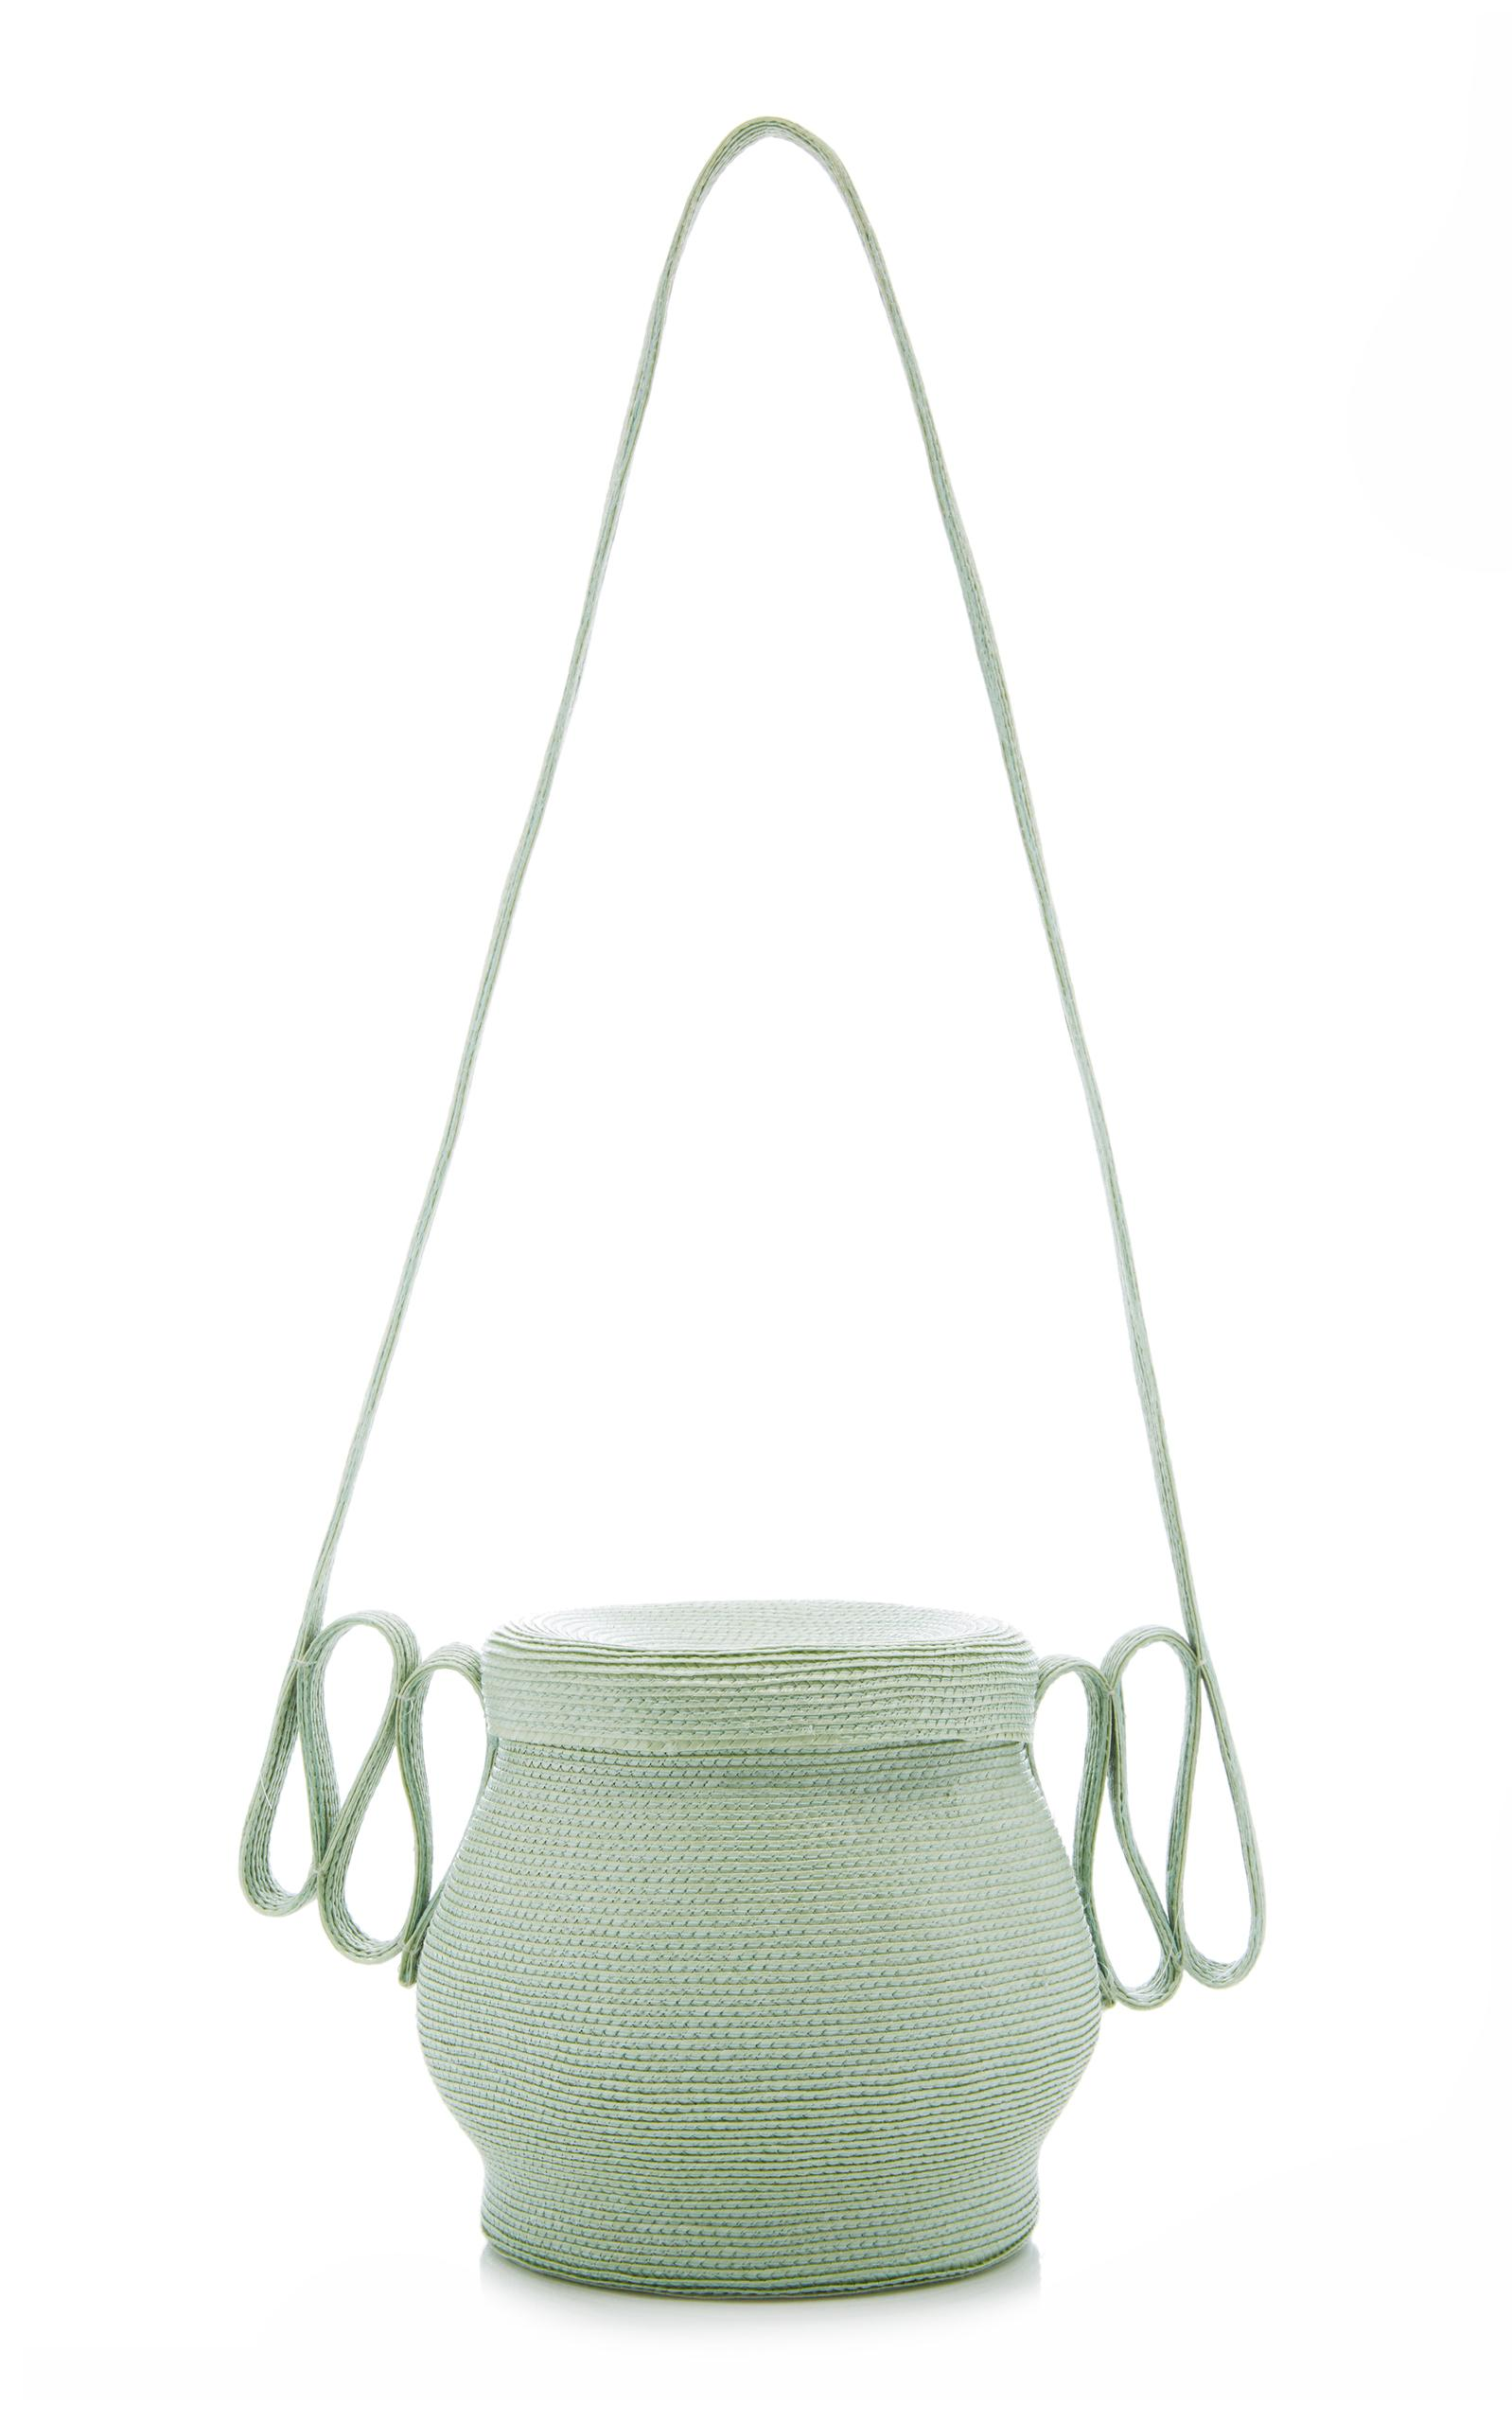 Rosie Assoulin Small Mint Jug Bag In Green